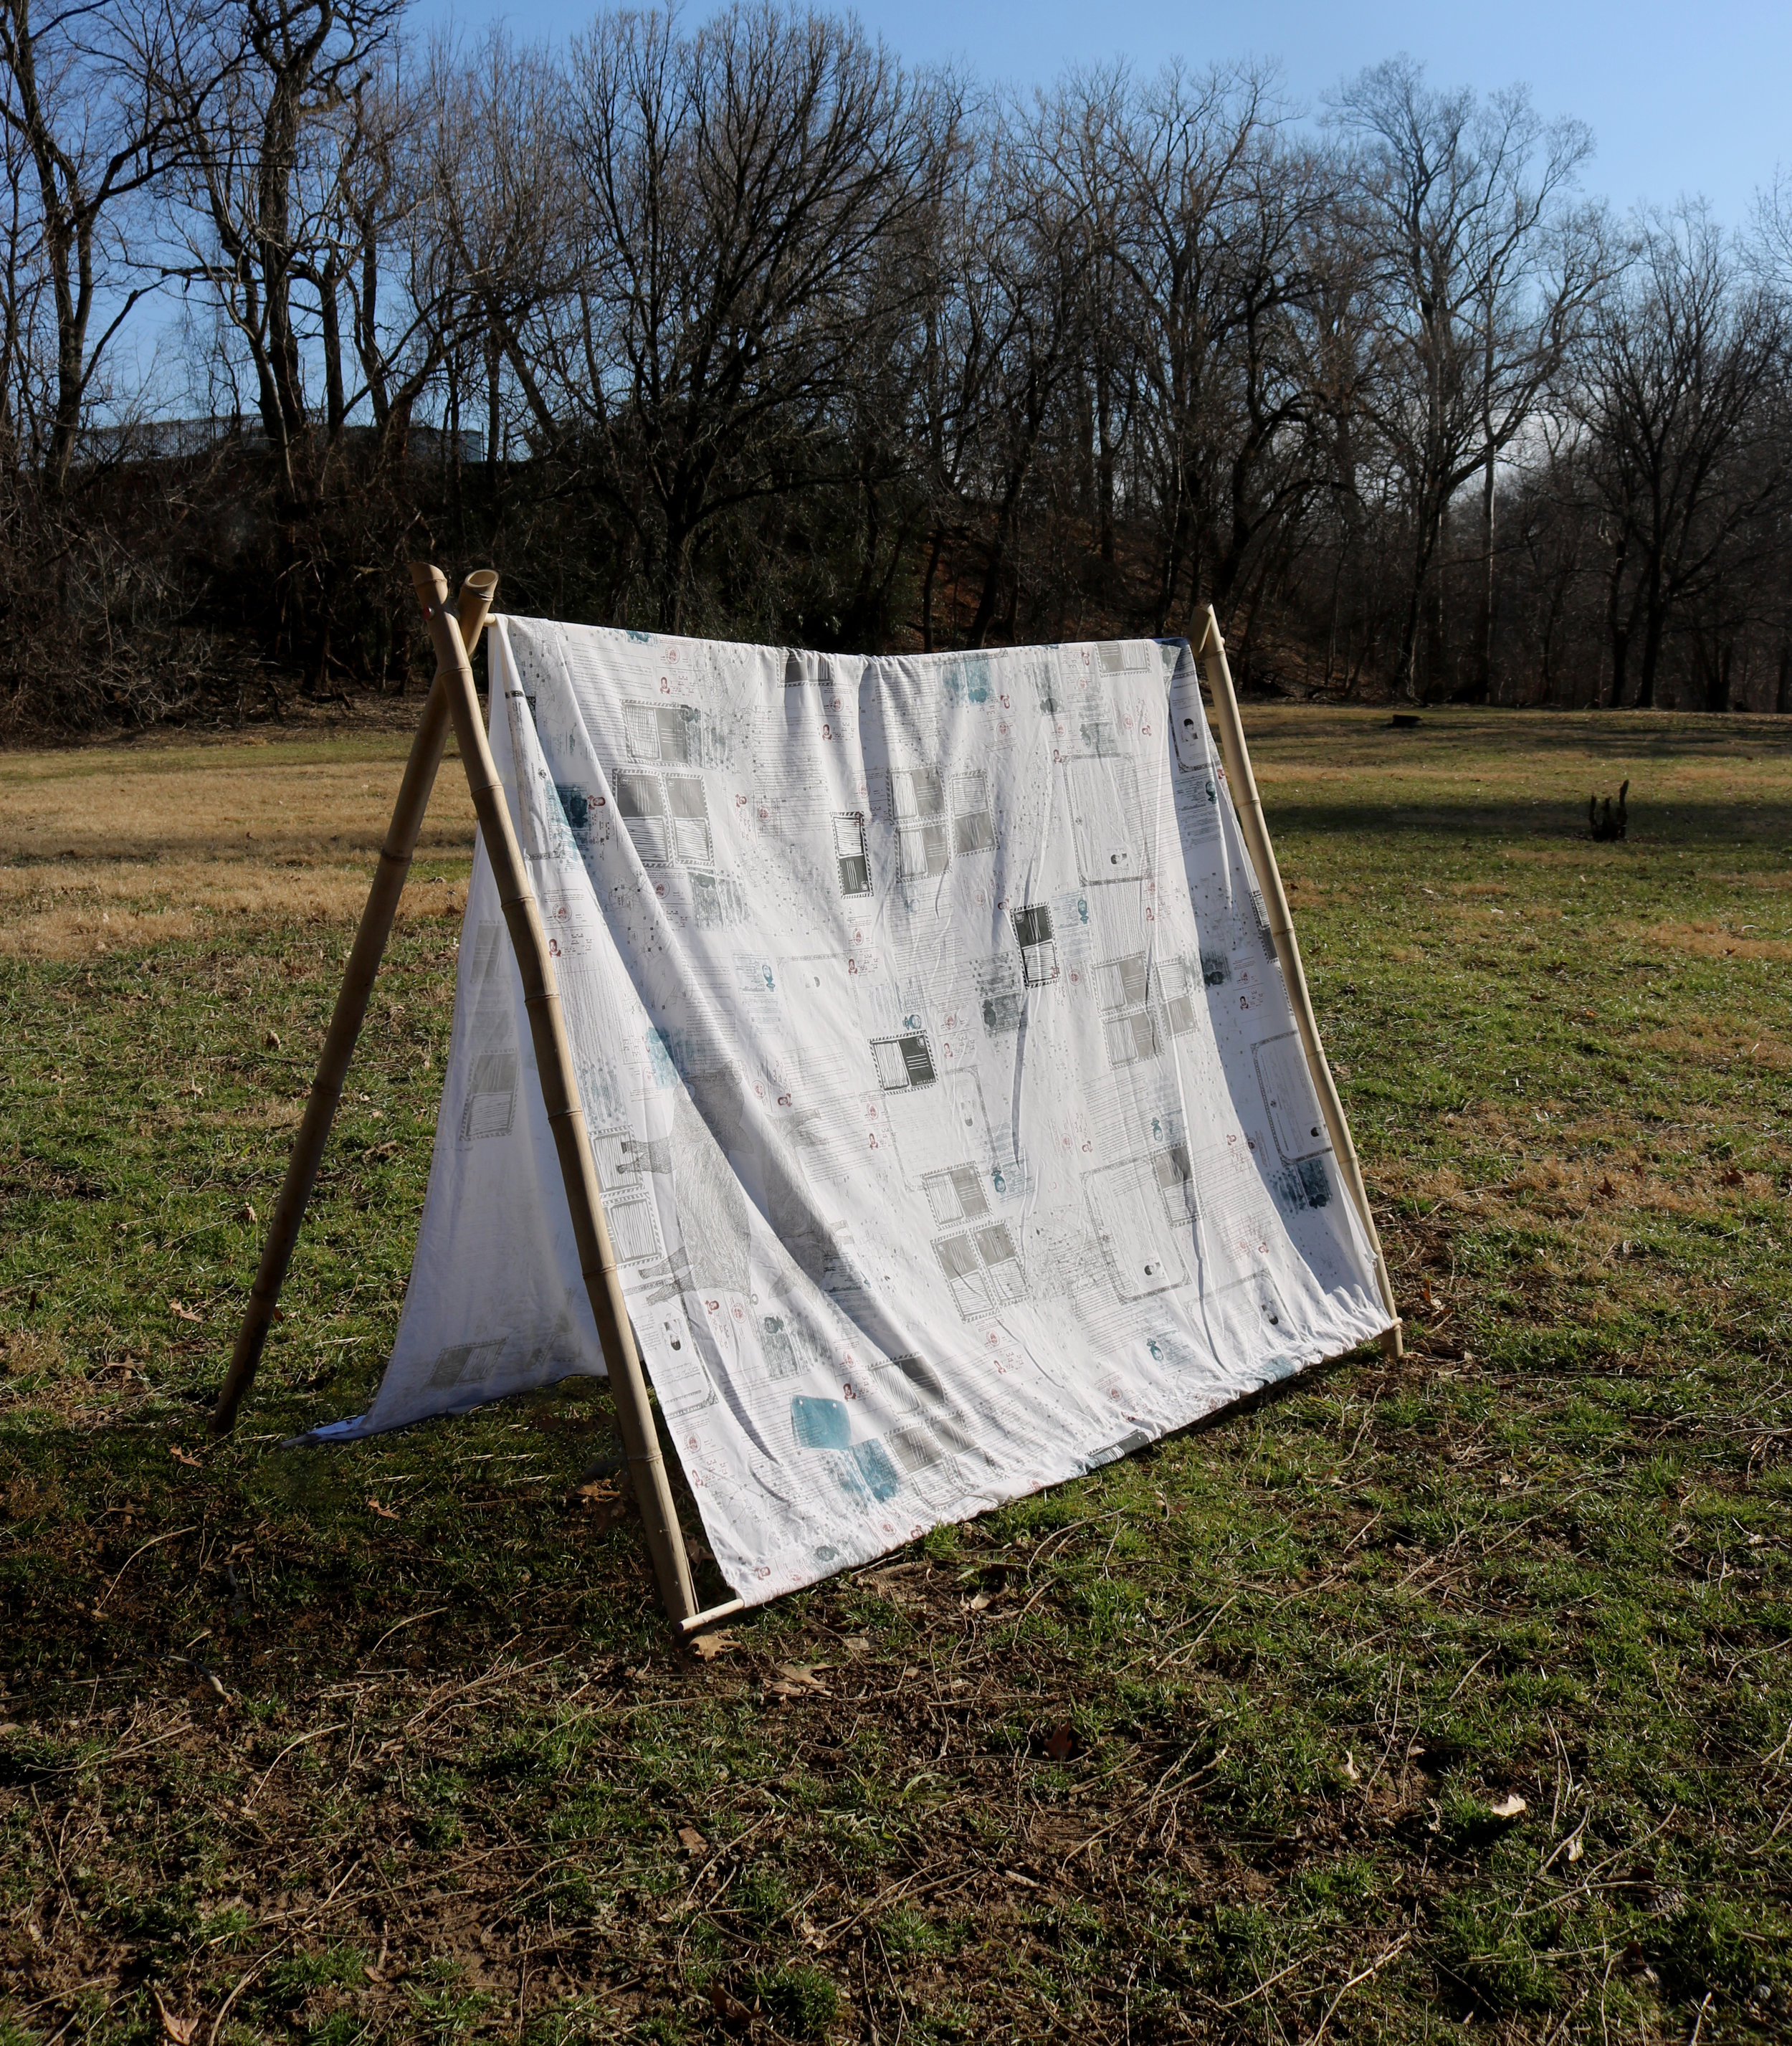 """To Build a Shelter , 32"""" x 72"""" x 58,""""2019  Silkscreened official government images + documents on repurposed bedsheet, a-frame tent handcrafted from foraged & dried bamboo poles."""